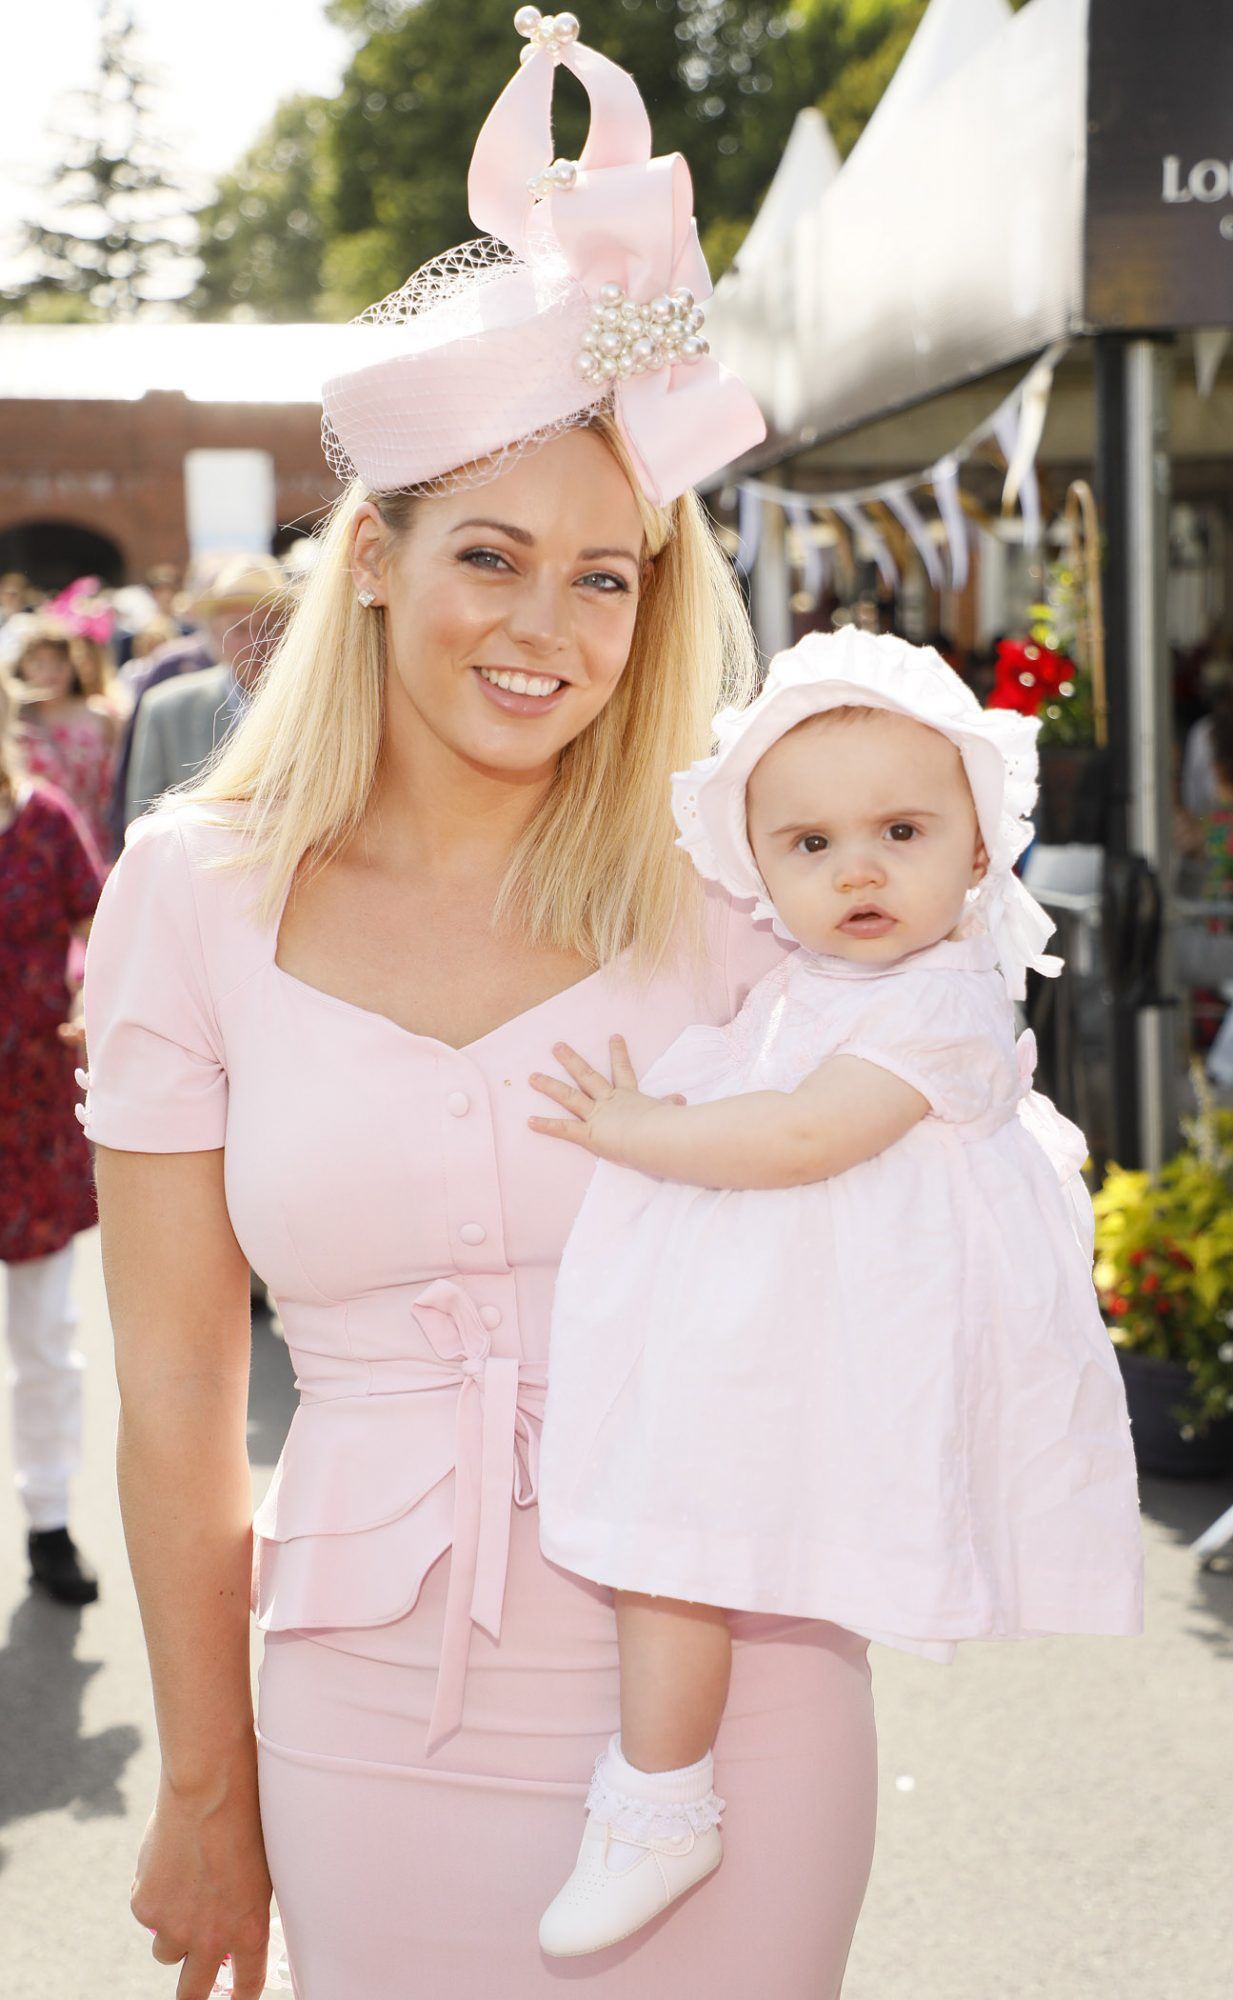 Victoria and Hannah Corr at the Dundrum Town Centre Ladies' Day at the Dublin Horse Show in the RDS. Photo: Kieran Harnett